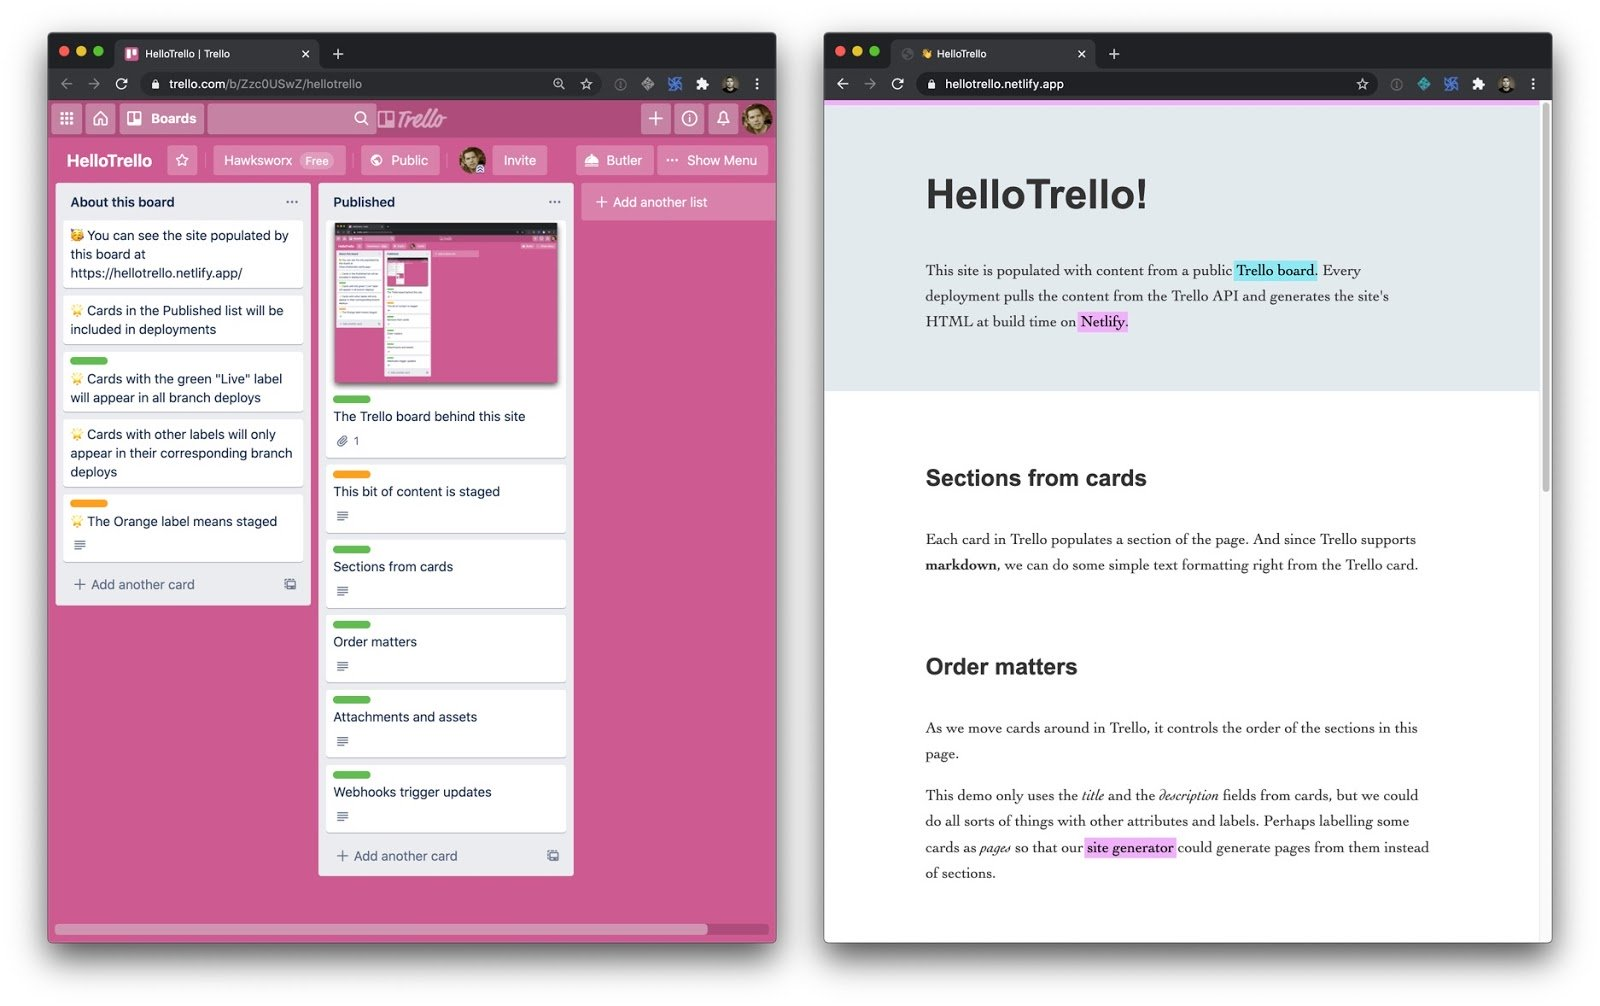 Two webpages side-by-side. The left is a Trello board with a bright pink background. The right is a screenshot of the build website using Trello data.